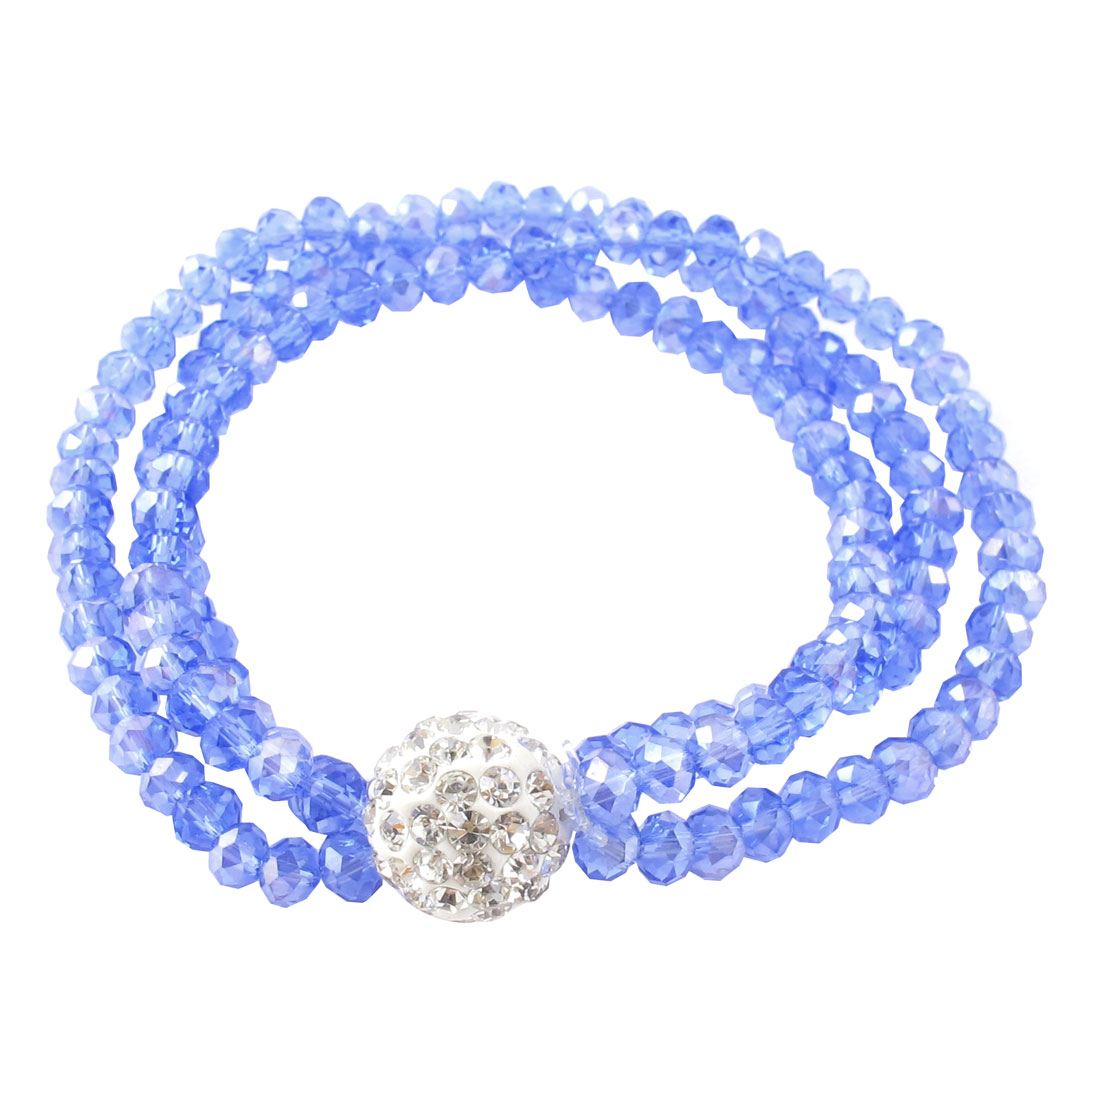 Rhinestones Inlaid Pendant Layered Faceted Bead Decor Stretchy Wrist Bracelet Blue